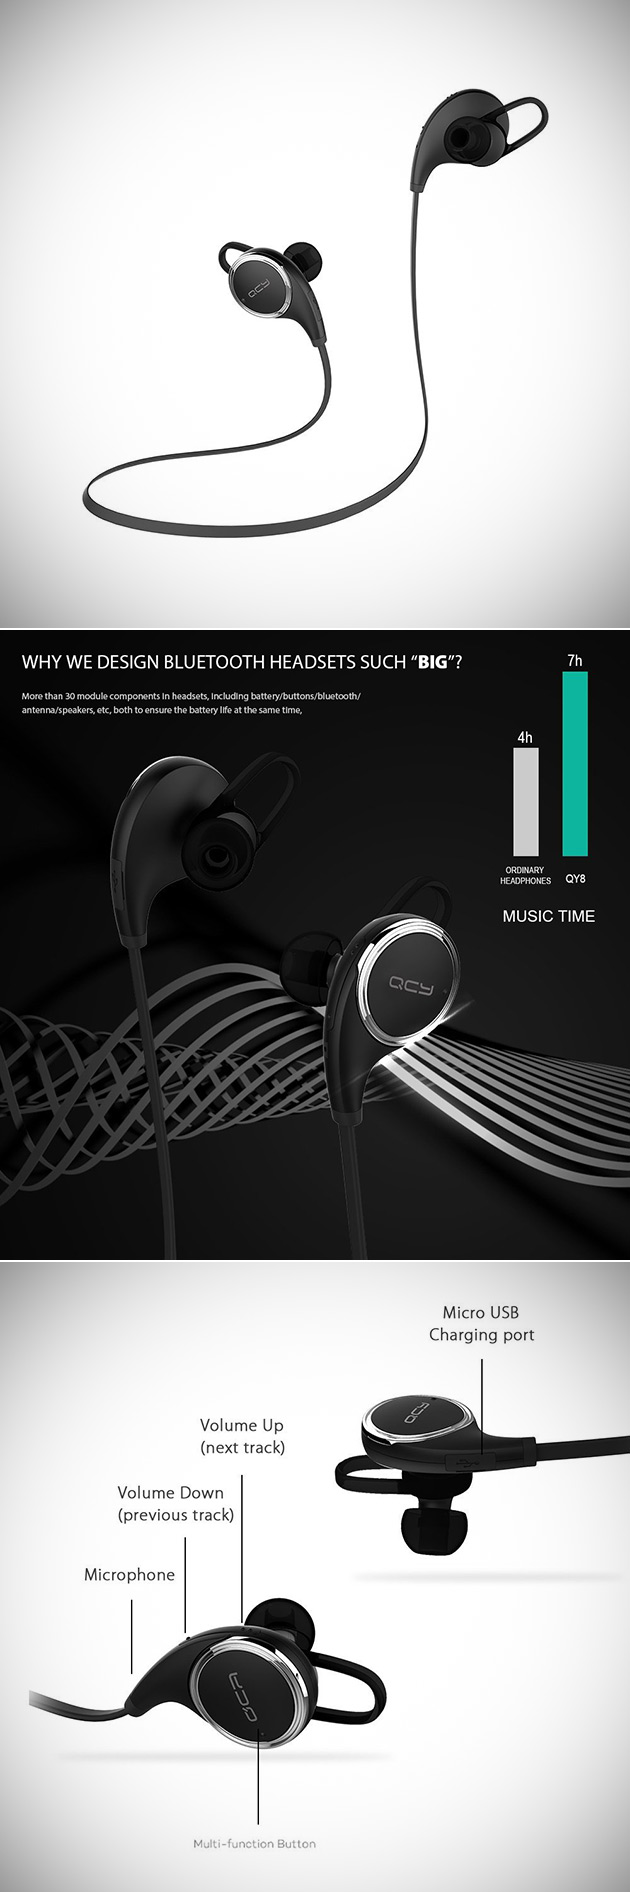 QCY Bluetooth Headphones